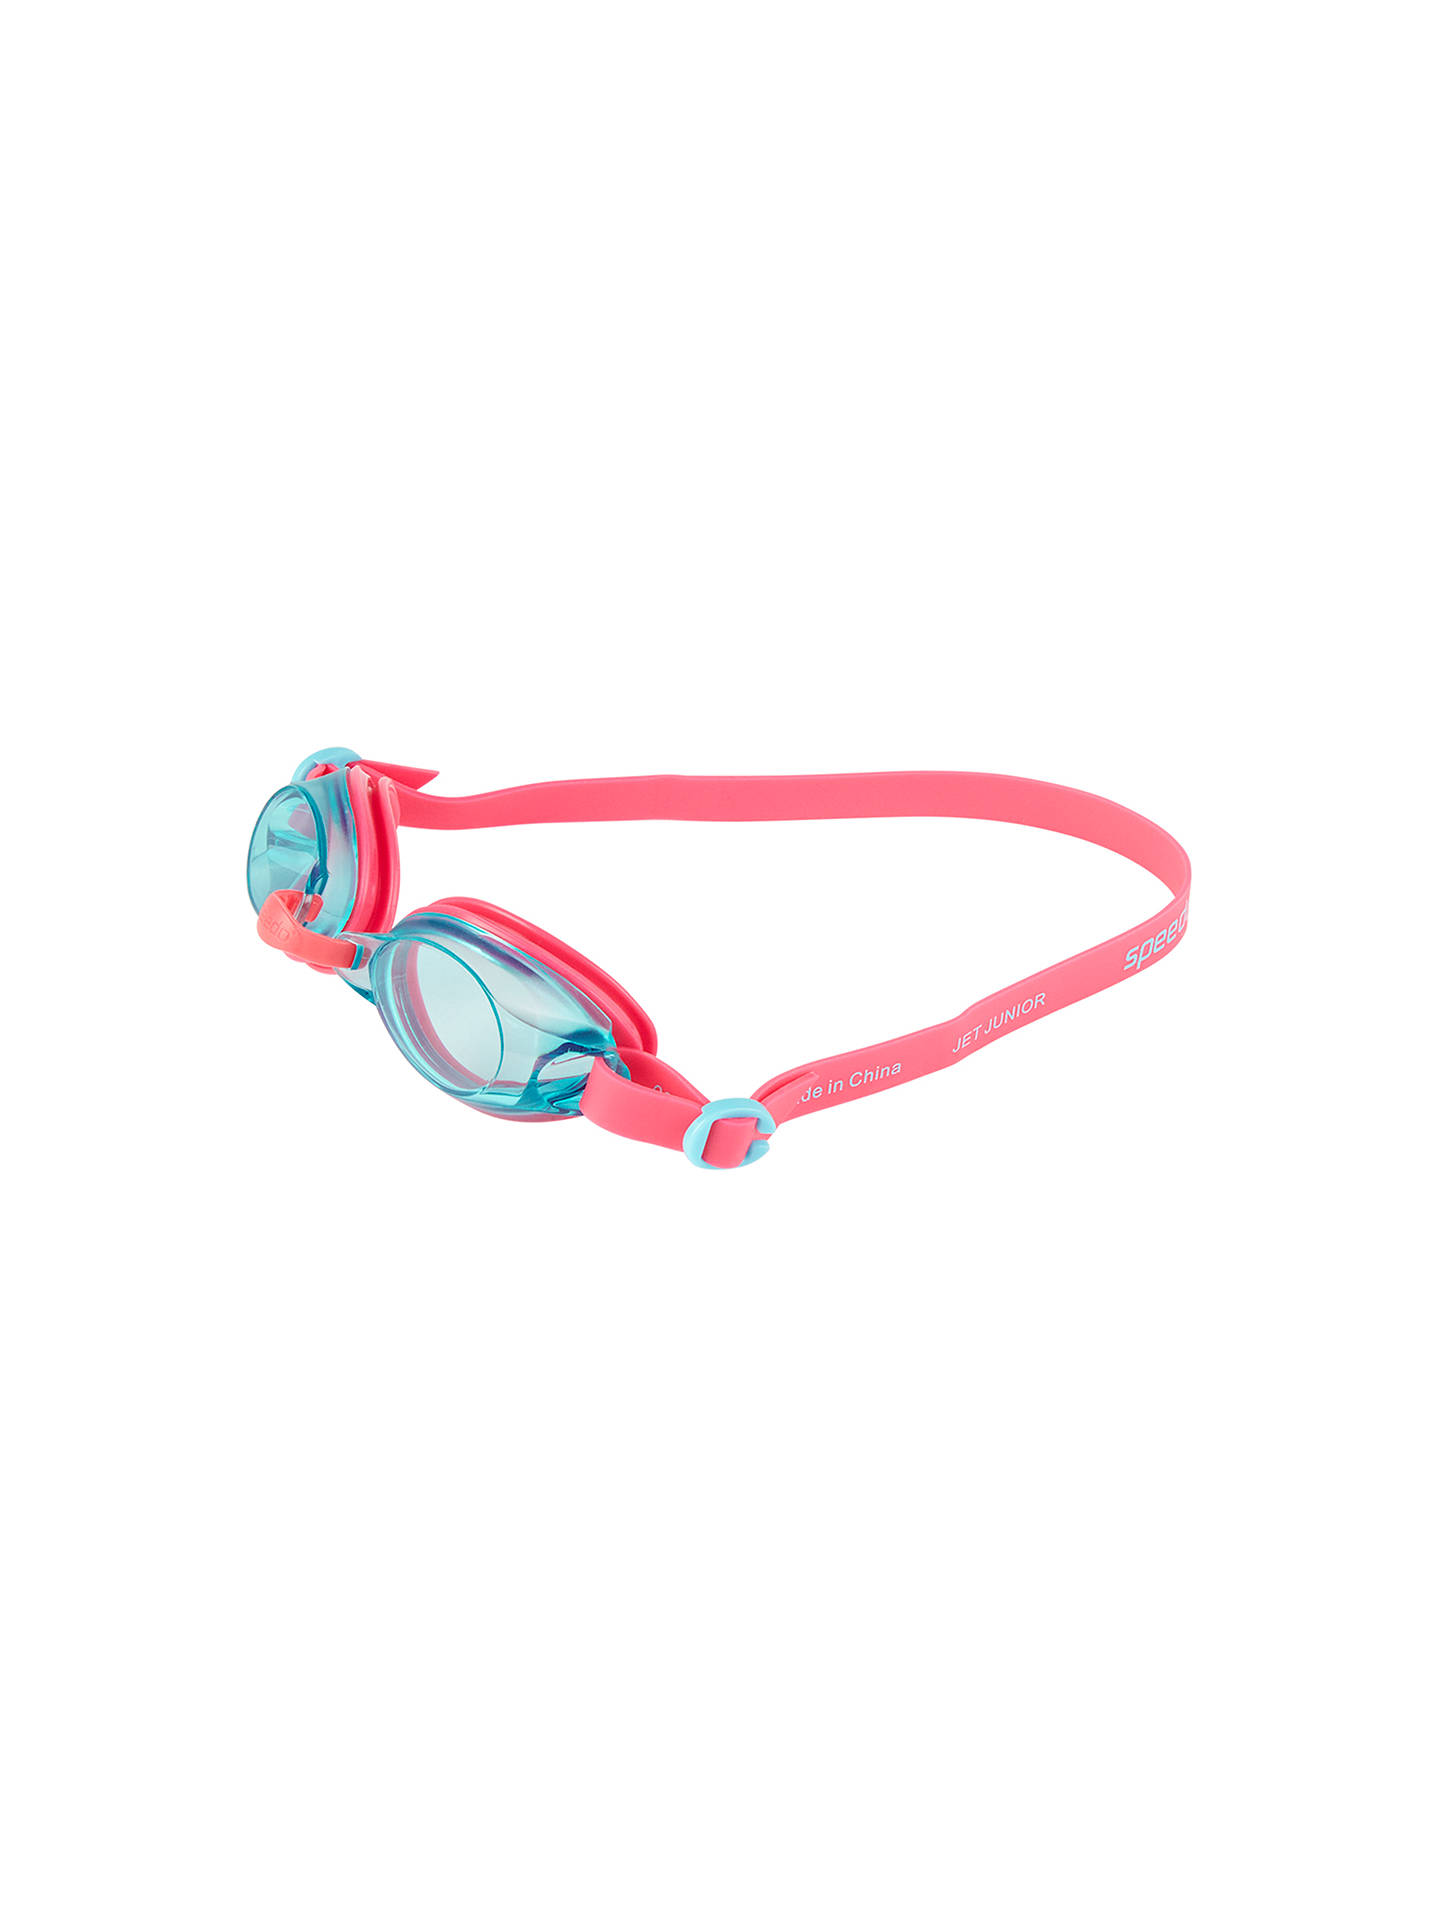 BuySpeedo Jet Junior Goggles, Pink/Blue Online at johnlewis.com